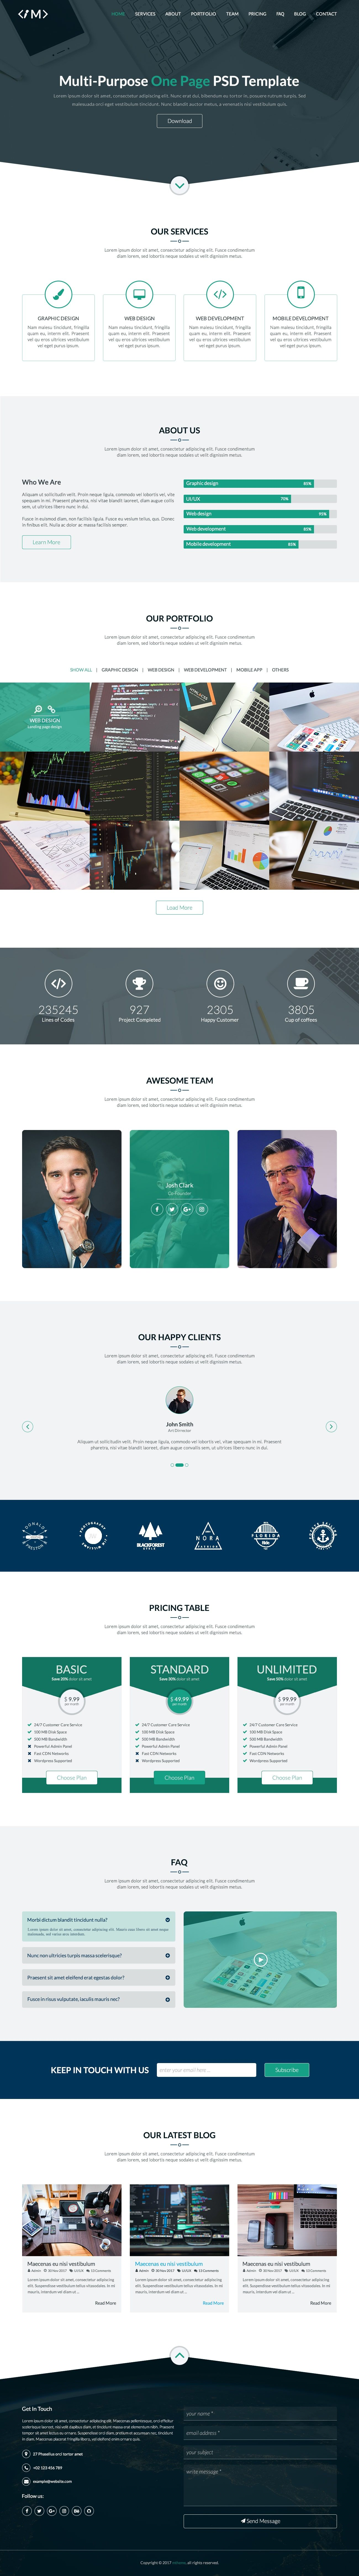 MTheme - Multi-Purpose One Page PSD Template Screenshot 7